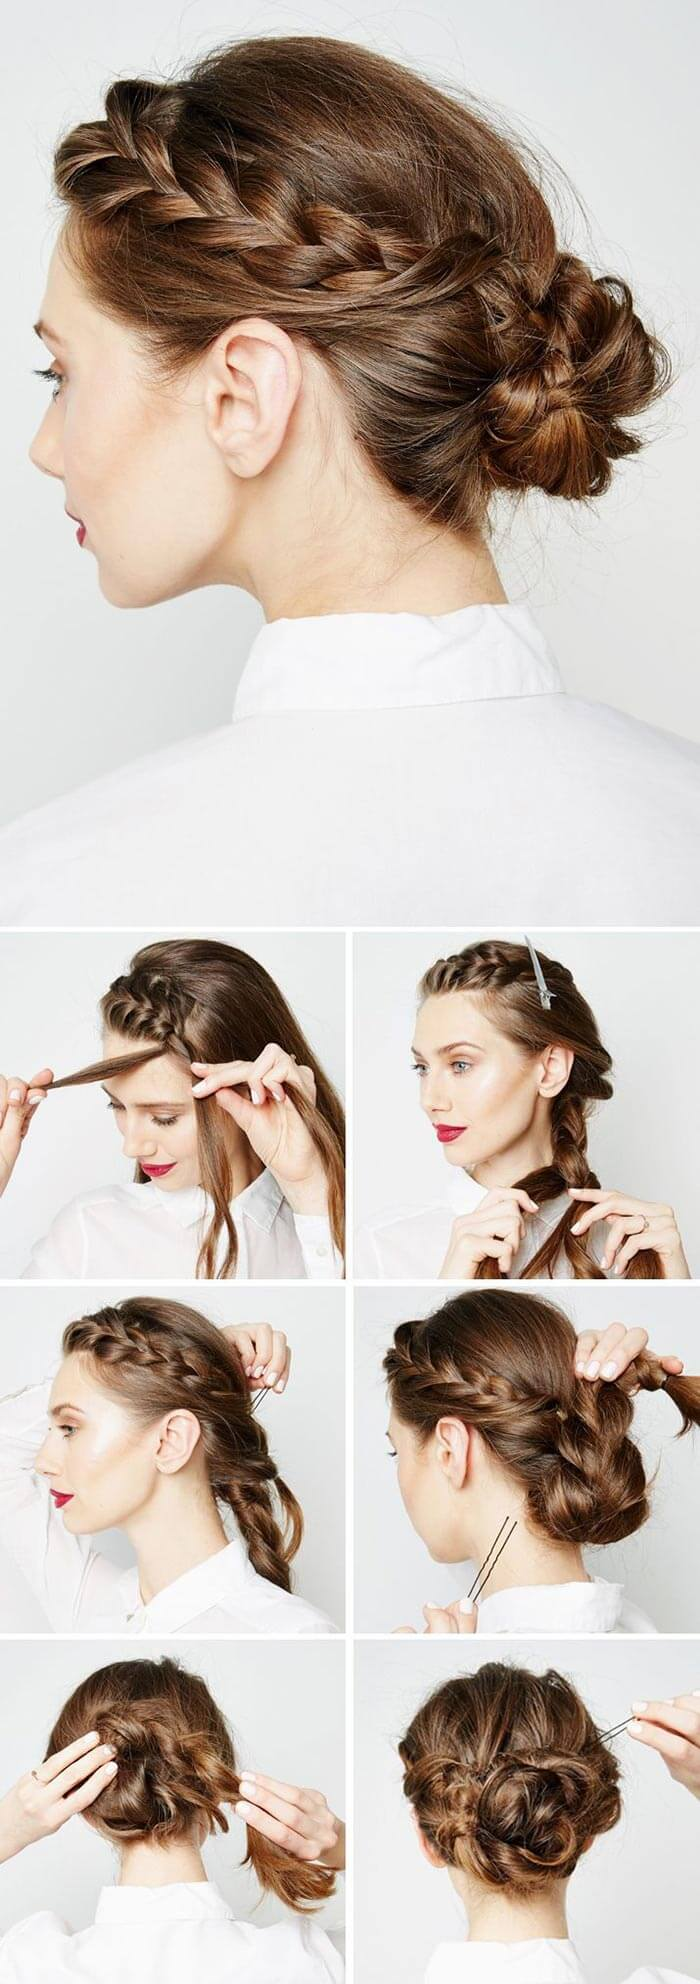 Tutorial braided hairstyle